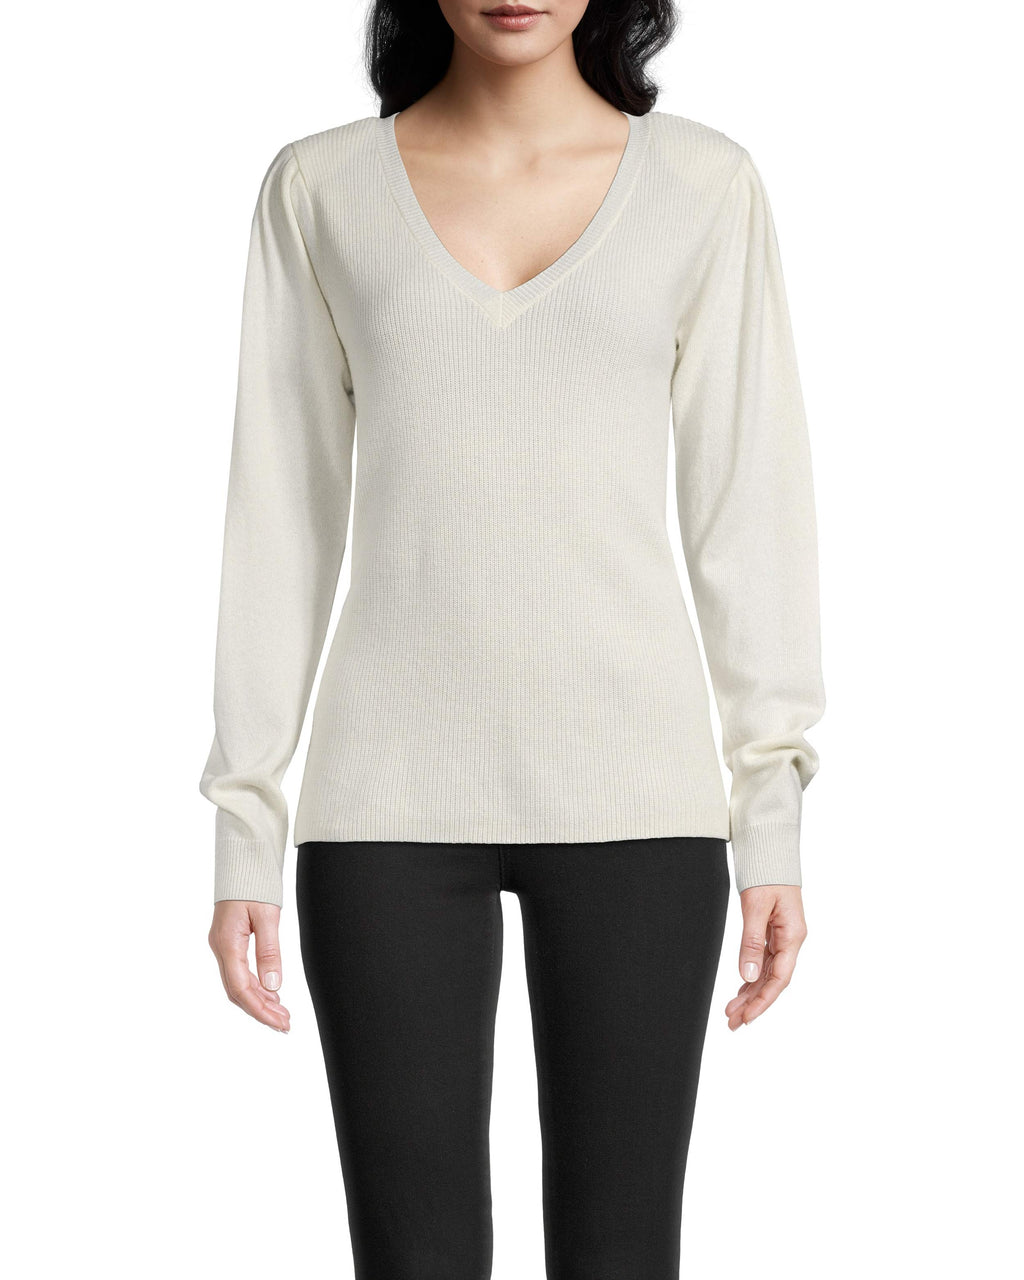 CT18309 - CASHMERE PUFF SLEEVE V NECK SWEATER - tops - knitwear - A v-neck sweater is a closet essential and this one is no exception. Made from 100% cashmere, this ultra soft piece has a slight puff sleeve for feminine detail and a classic v neckline. Designed in an array of colors to perfectly match with everything already in your closet. Add 1 line break Stylist tip: Pair with our mesh maxi skirt and sneakers for a chic, daytime look.